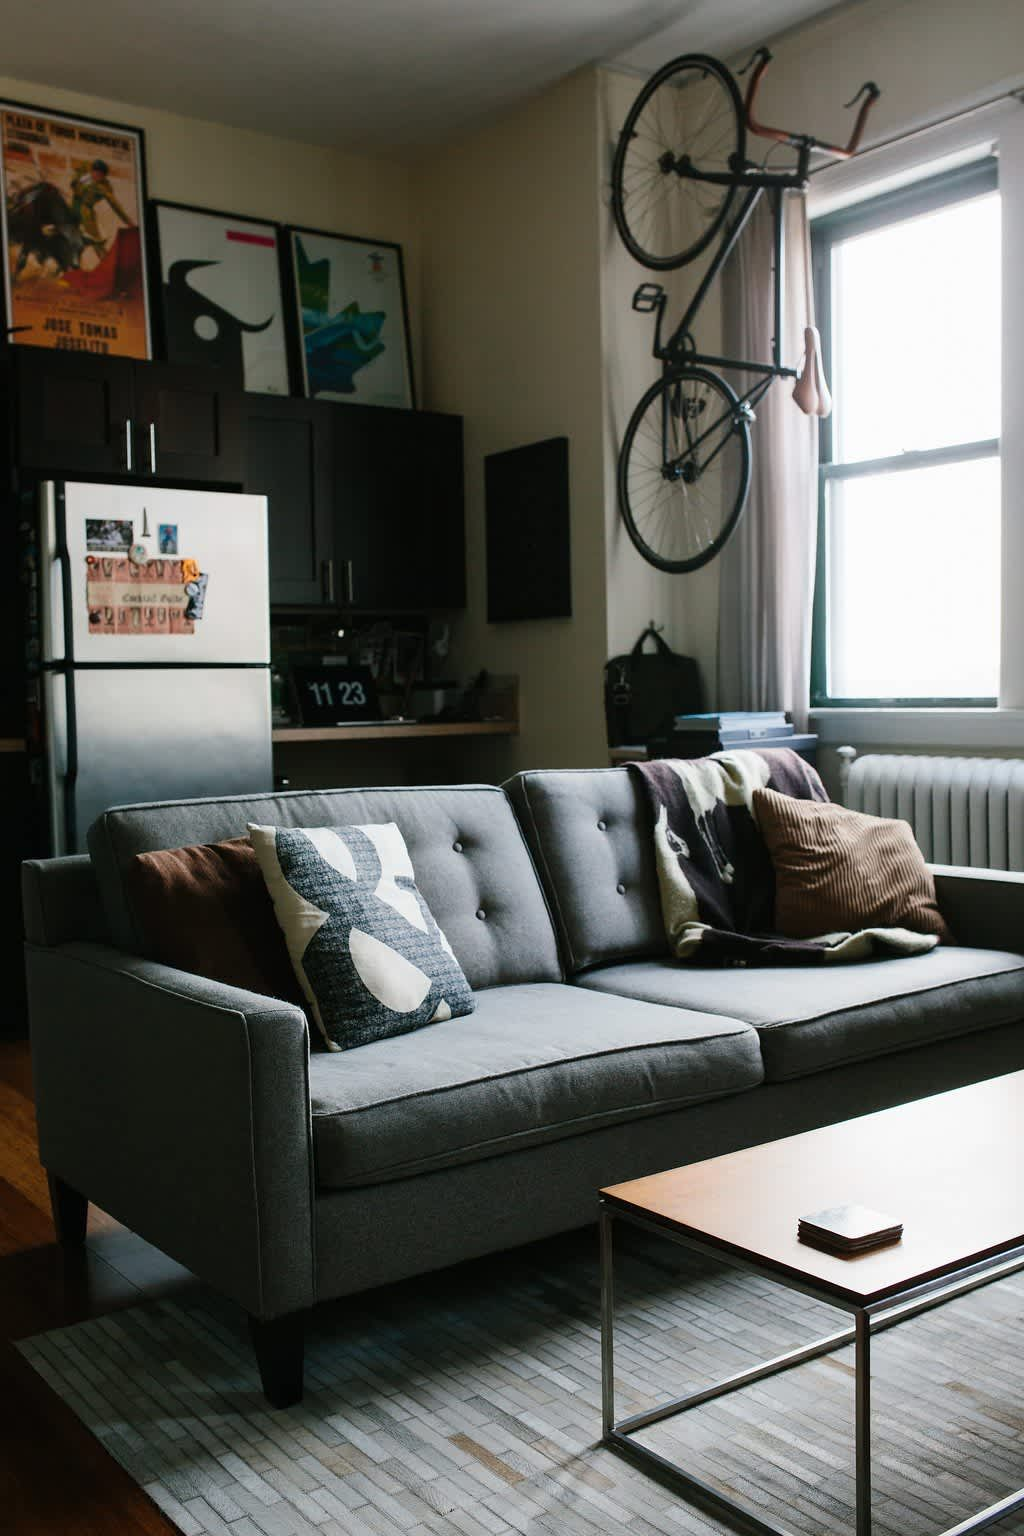 Jack's Small Stylish Space in Chicago images